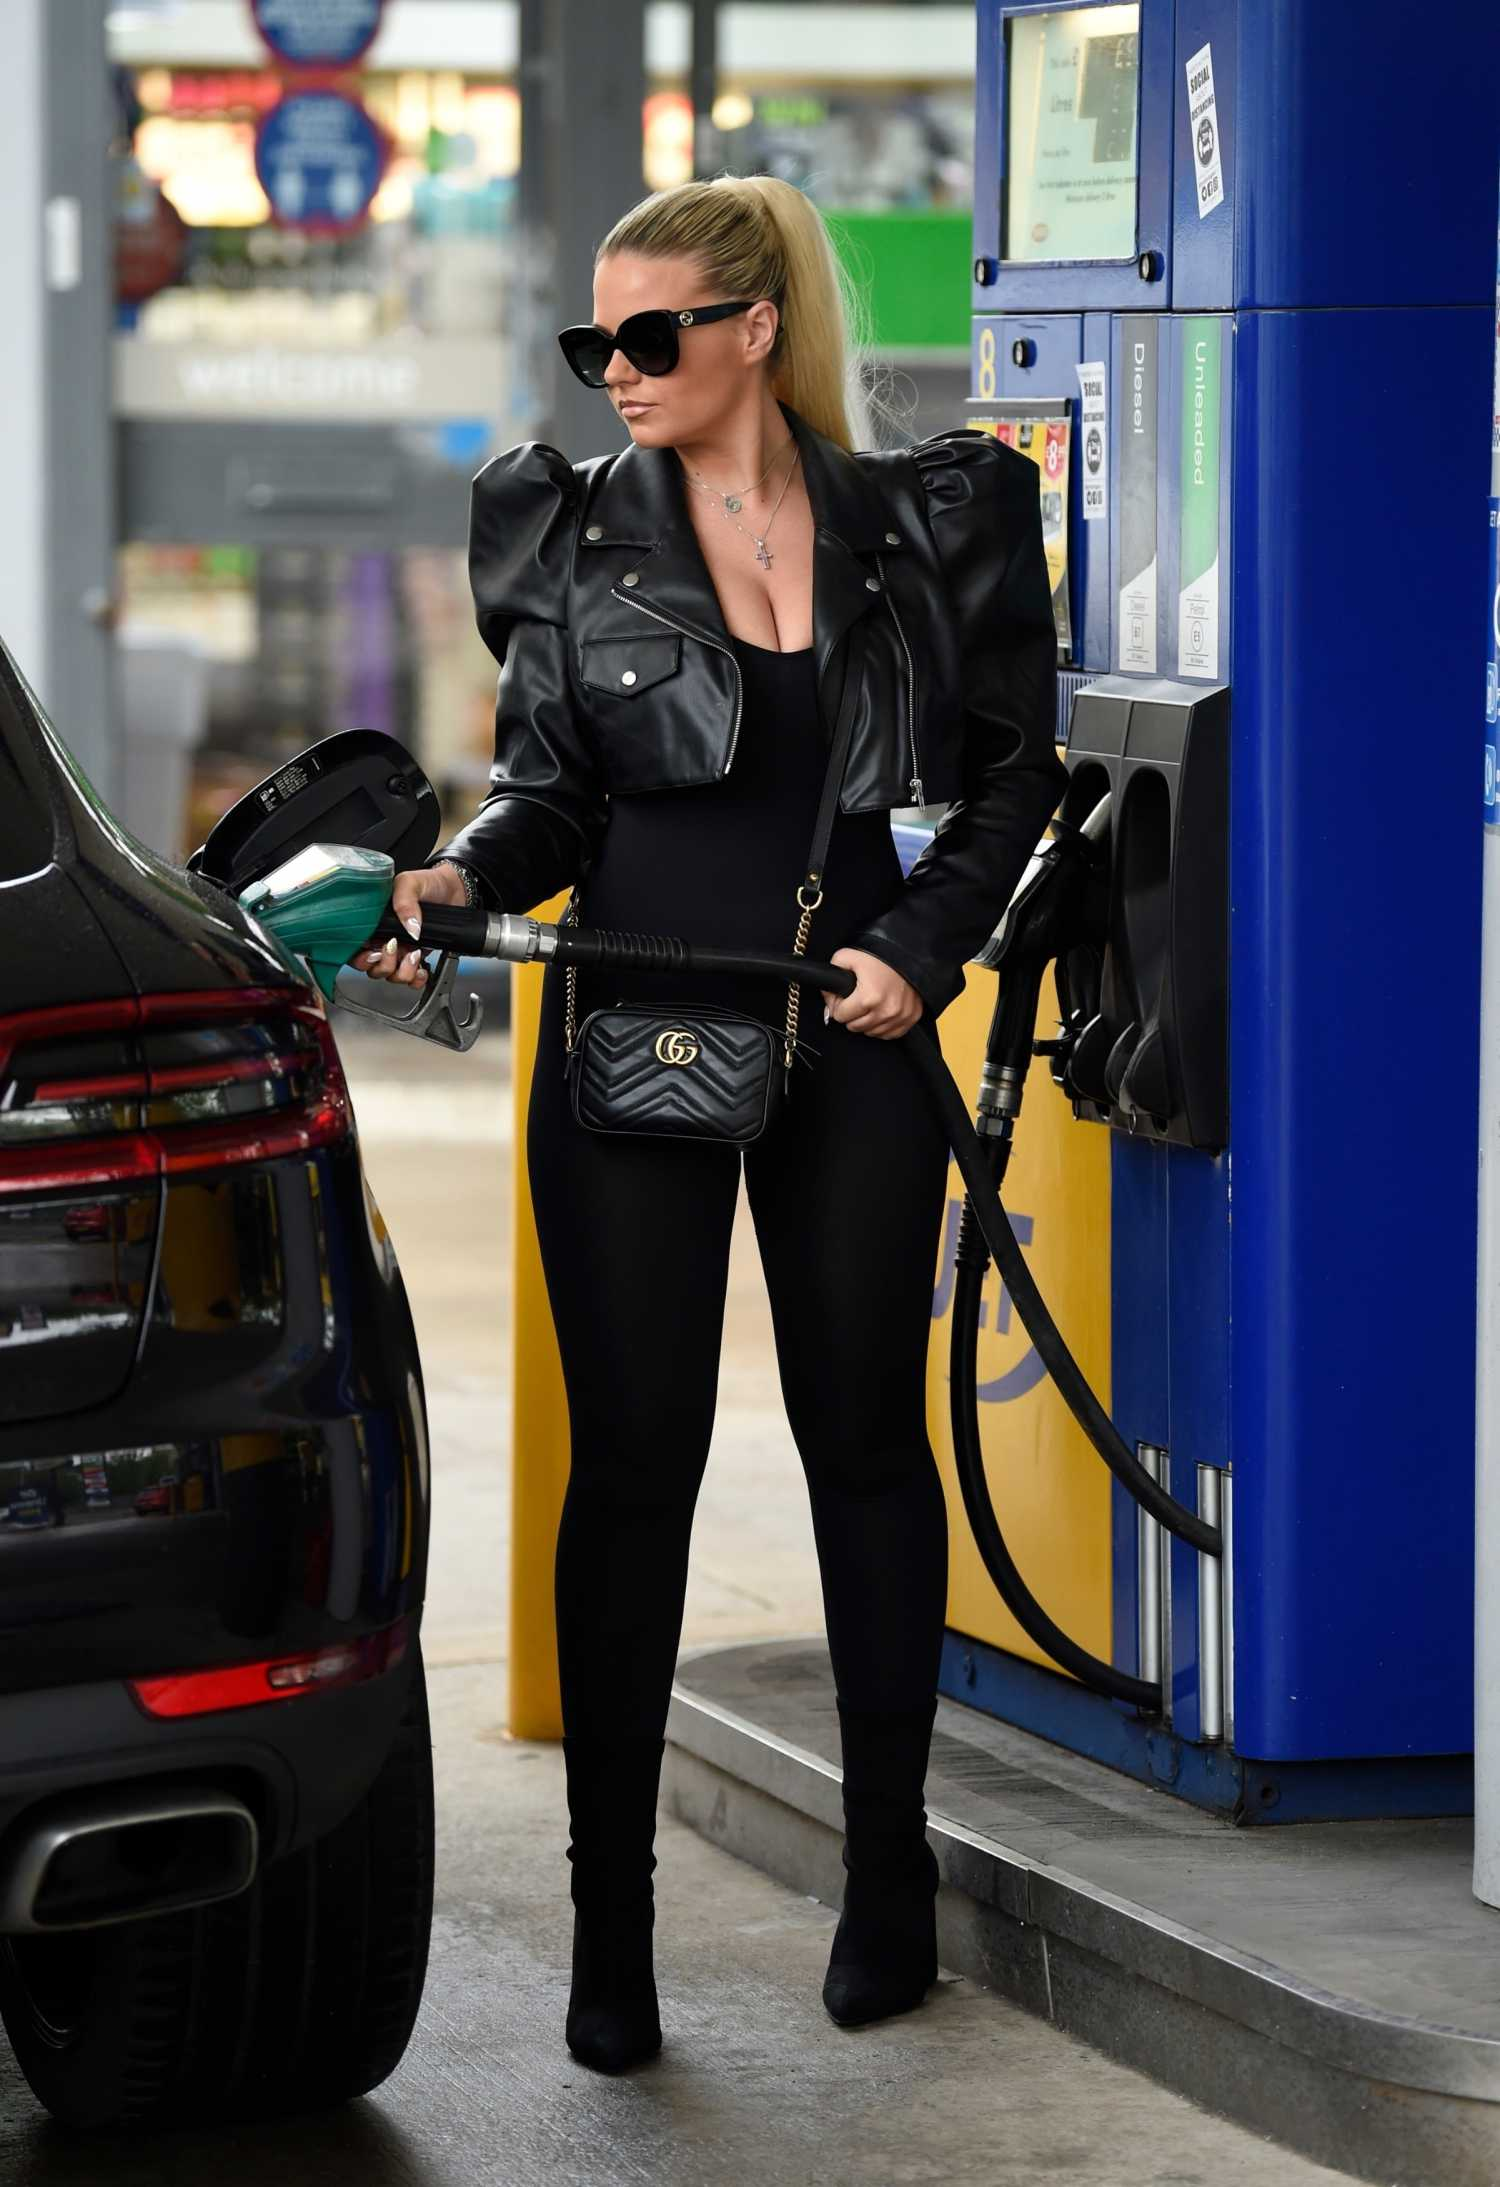 Apollonia Llewellyn in a Black Outfit Was Seen at a Gas